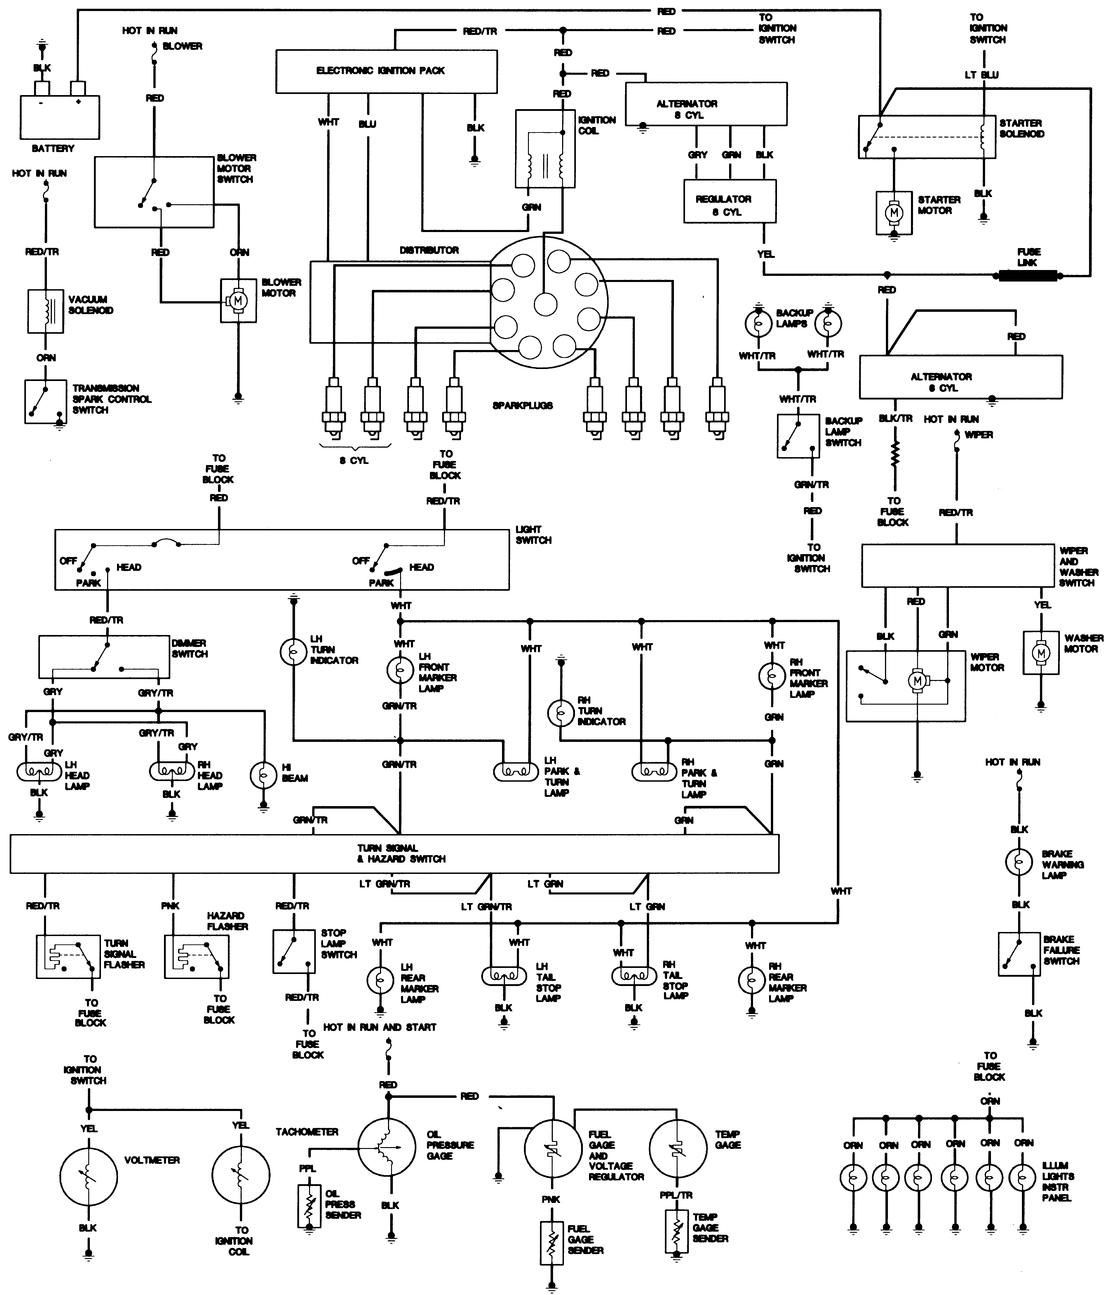 1980 cj5 wiring diagram furthermore jeep cj7 tachometer wiring ... Omix Ada Wiring Schematic on transformer schematics, motor schematics, electronics schematics, ductwork schematics, plumbing schematics, wire schematics, ford diagrams schematics, computer schematics, generator schematics, tube amp schematics, circuit schematics, ignition schematics, ecu schematics, electrical schematics, transmission schematics, design schematics, engineering schematics, amplifier schematics, engine schematics, piping schematics,